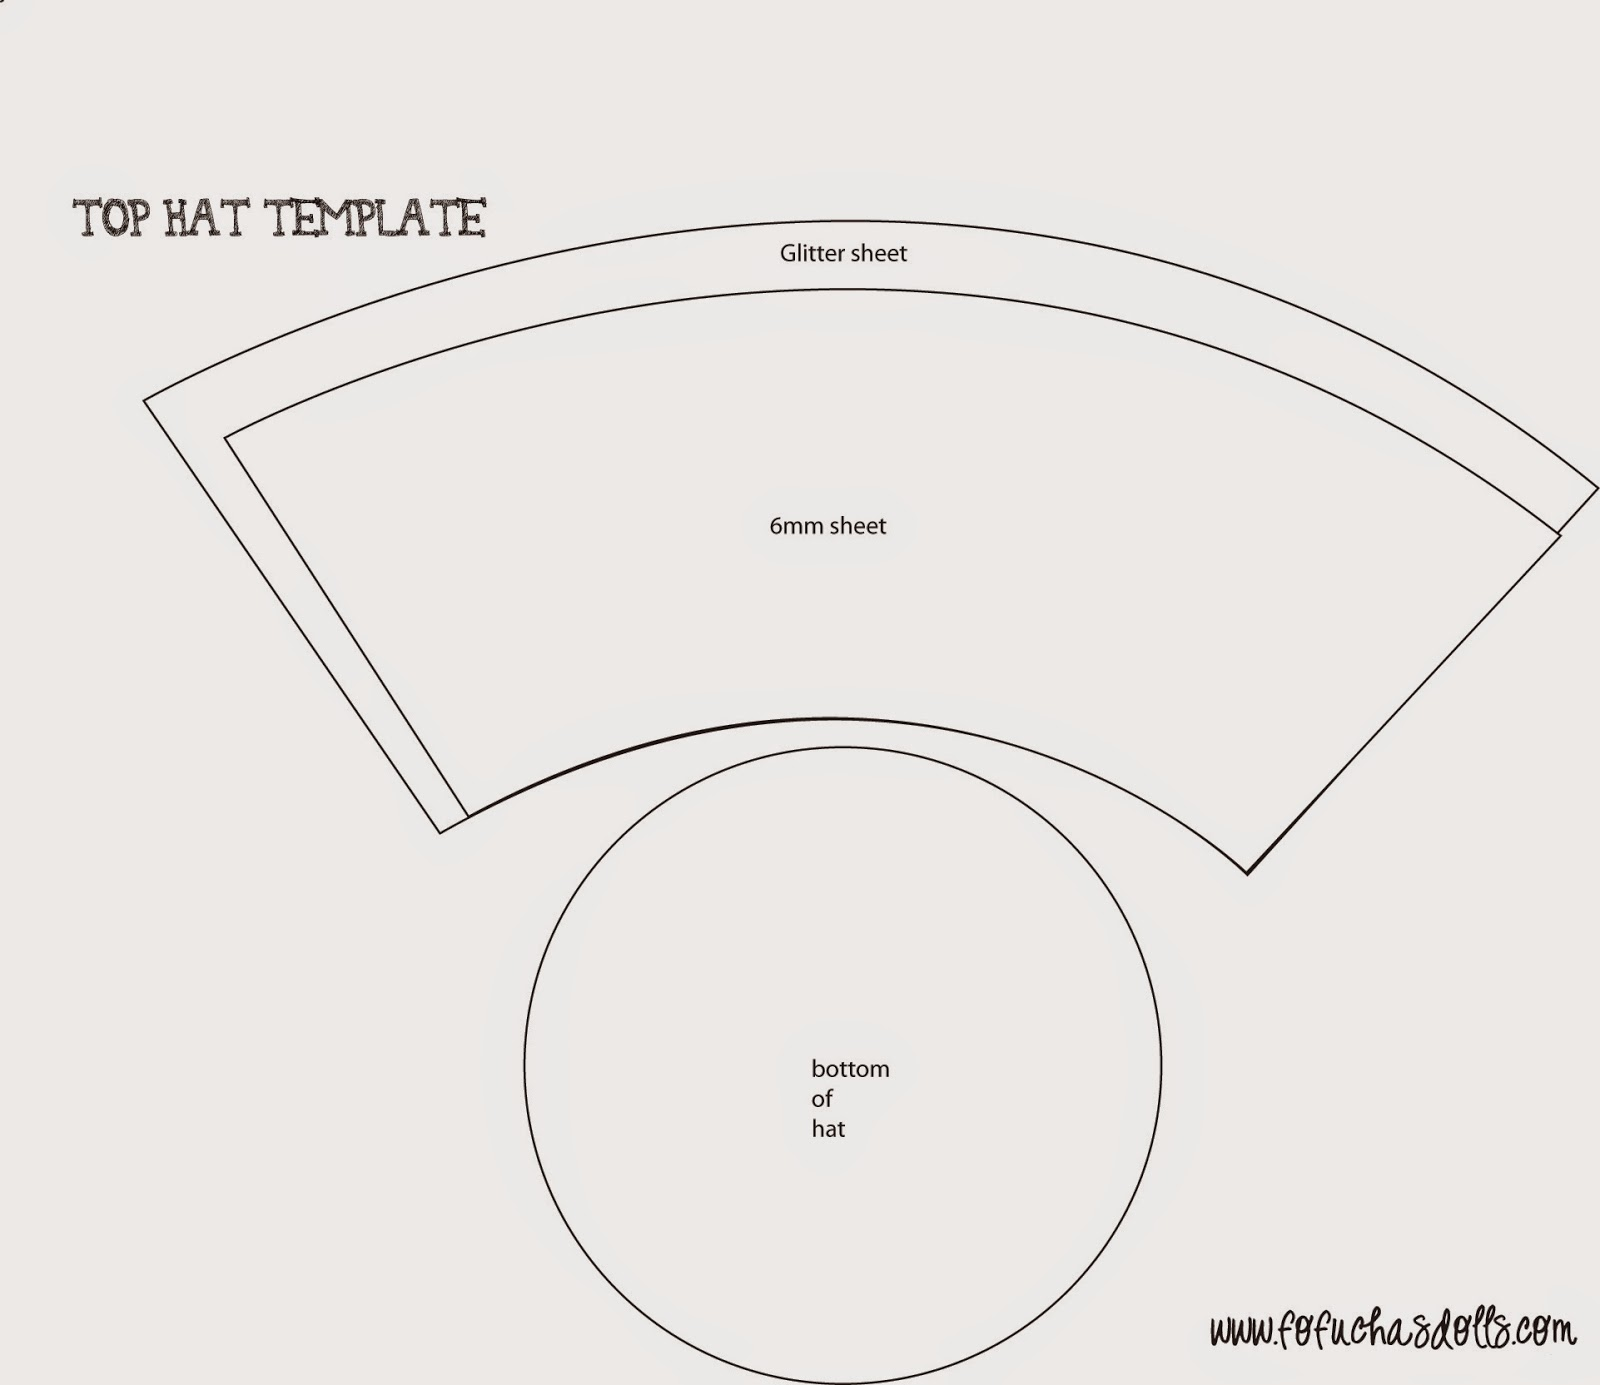 Top Hat Template Printable | galleryhip.com - The Hippest Galleries!